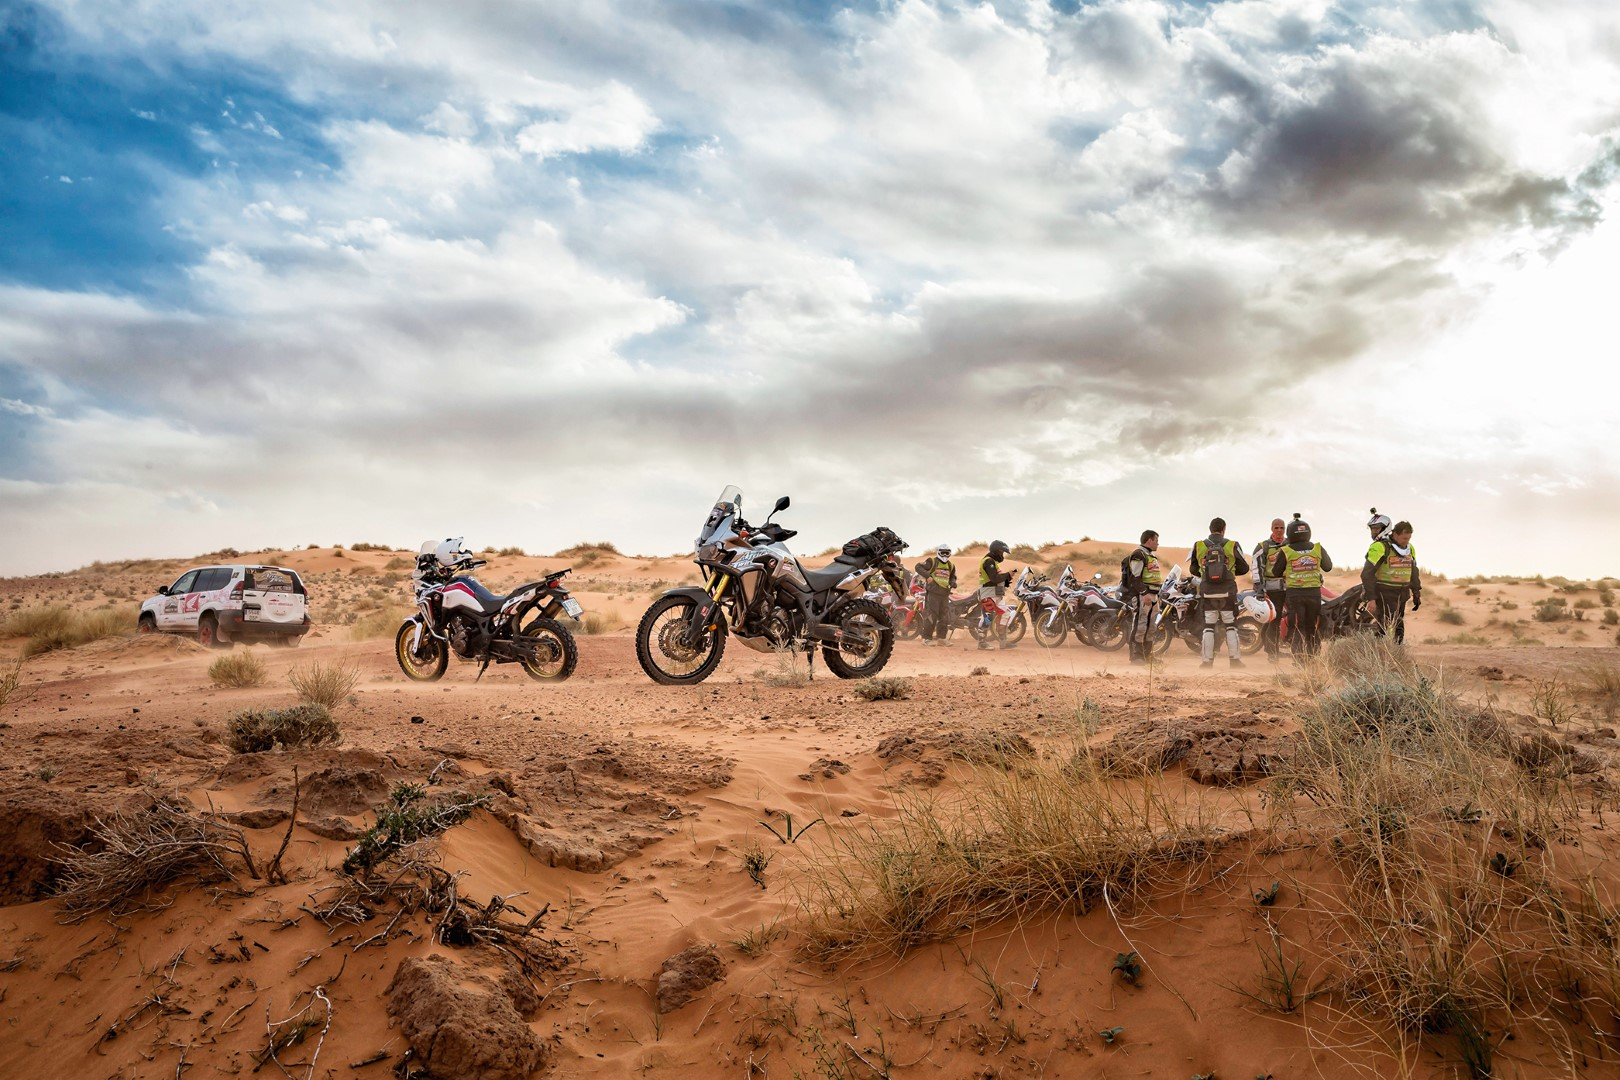 Honda Africa Twin Morocco Epic Tour, fotos